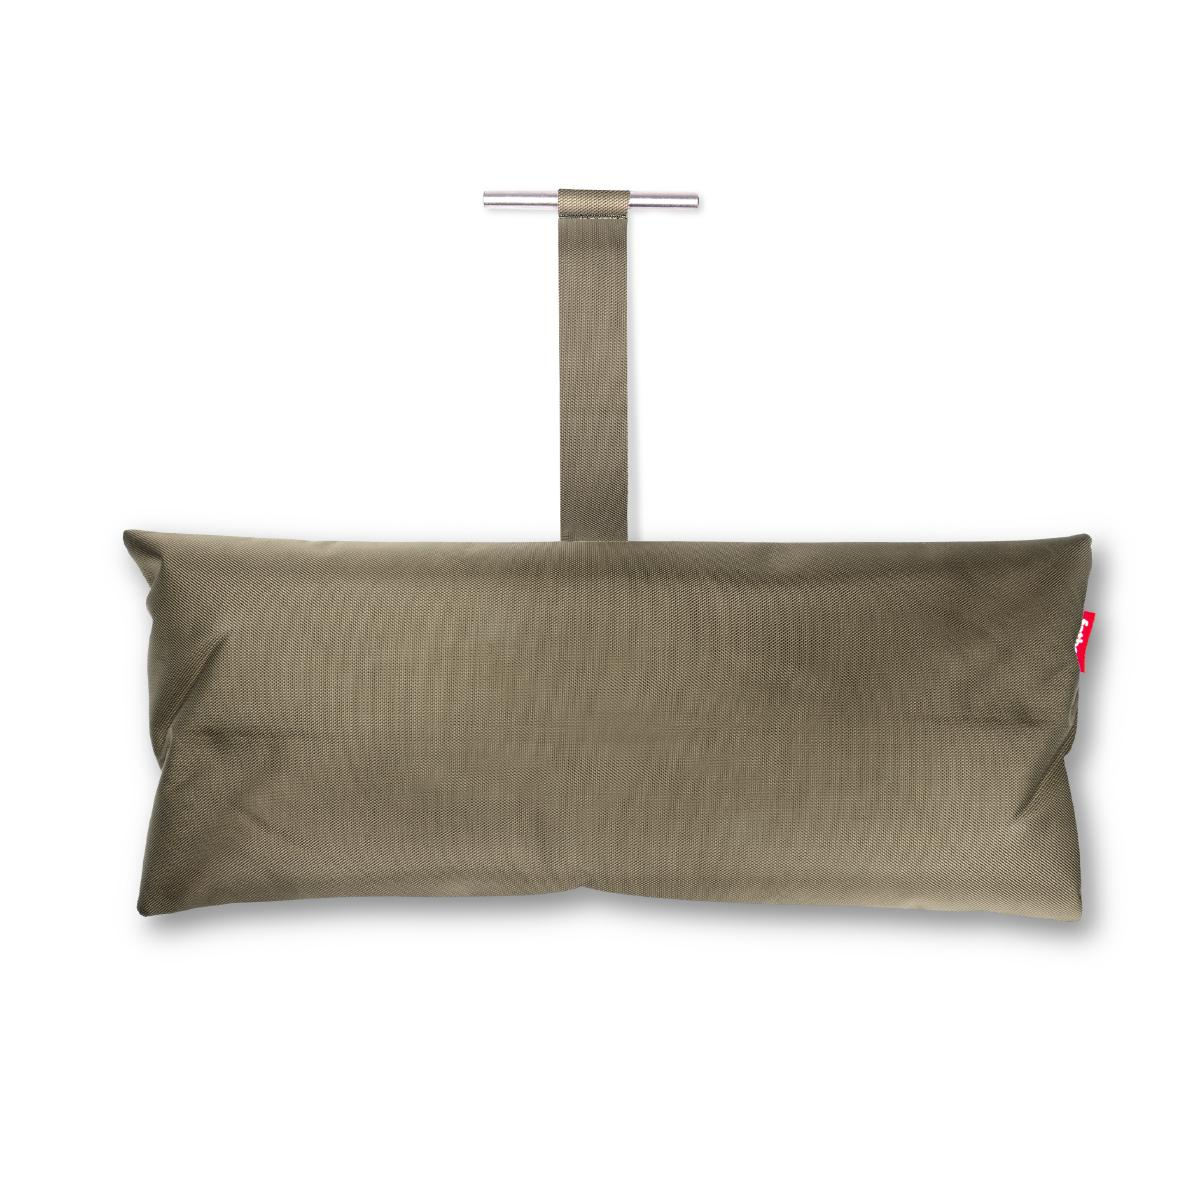 https://www.fundesign.nl/media/catalog/product/f/a/fatboy_headdemock-pillow_taupe_1200x1200px_100651.jpg